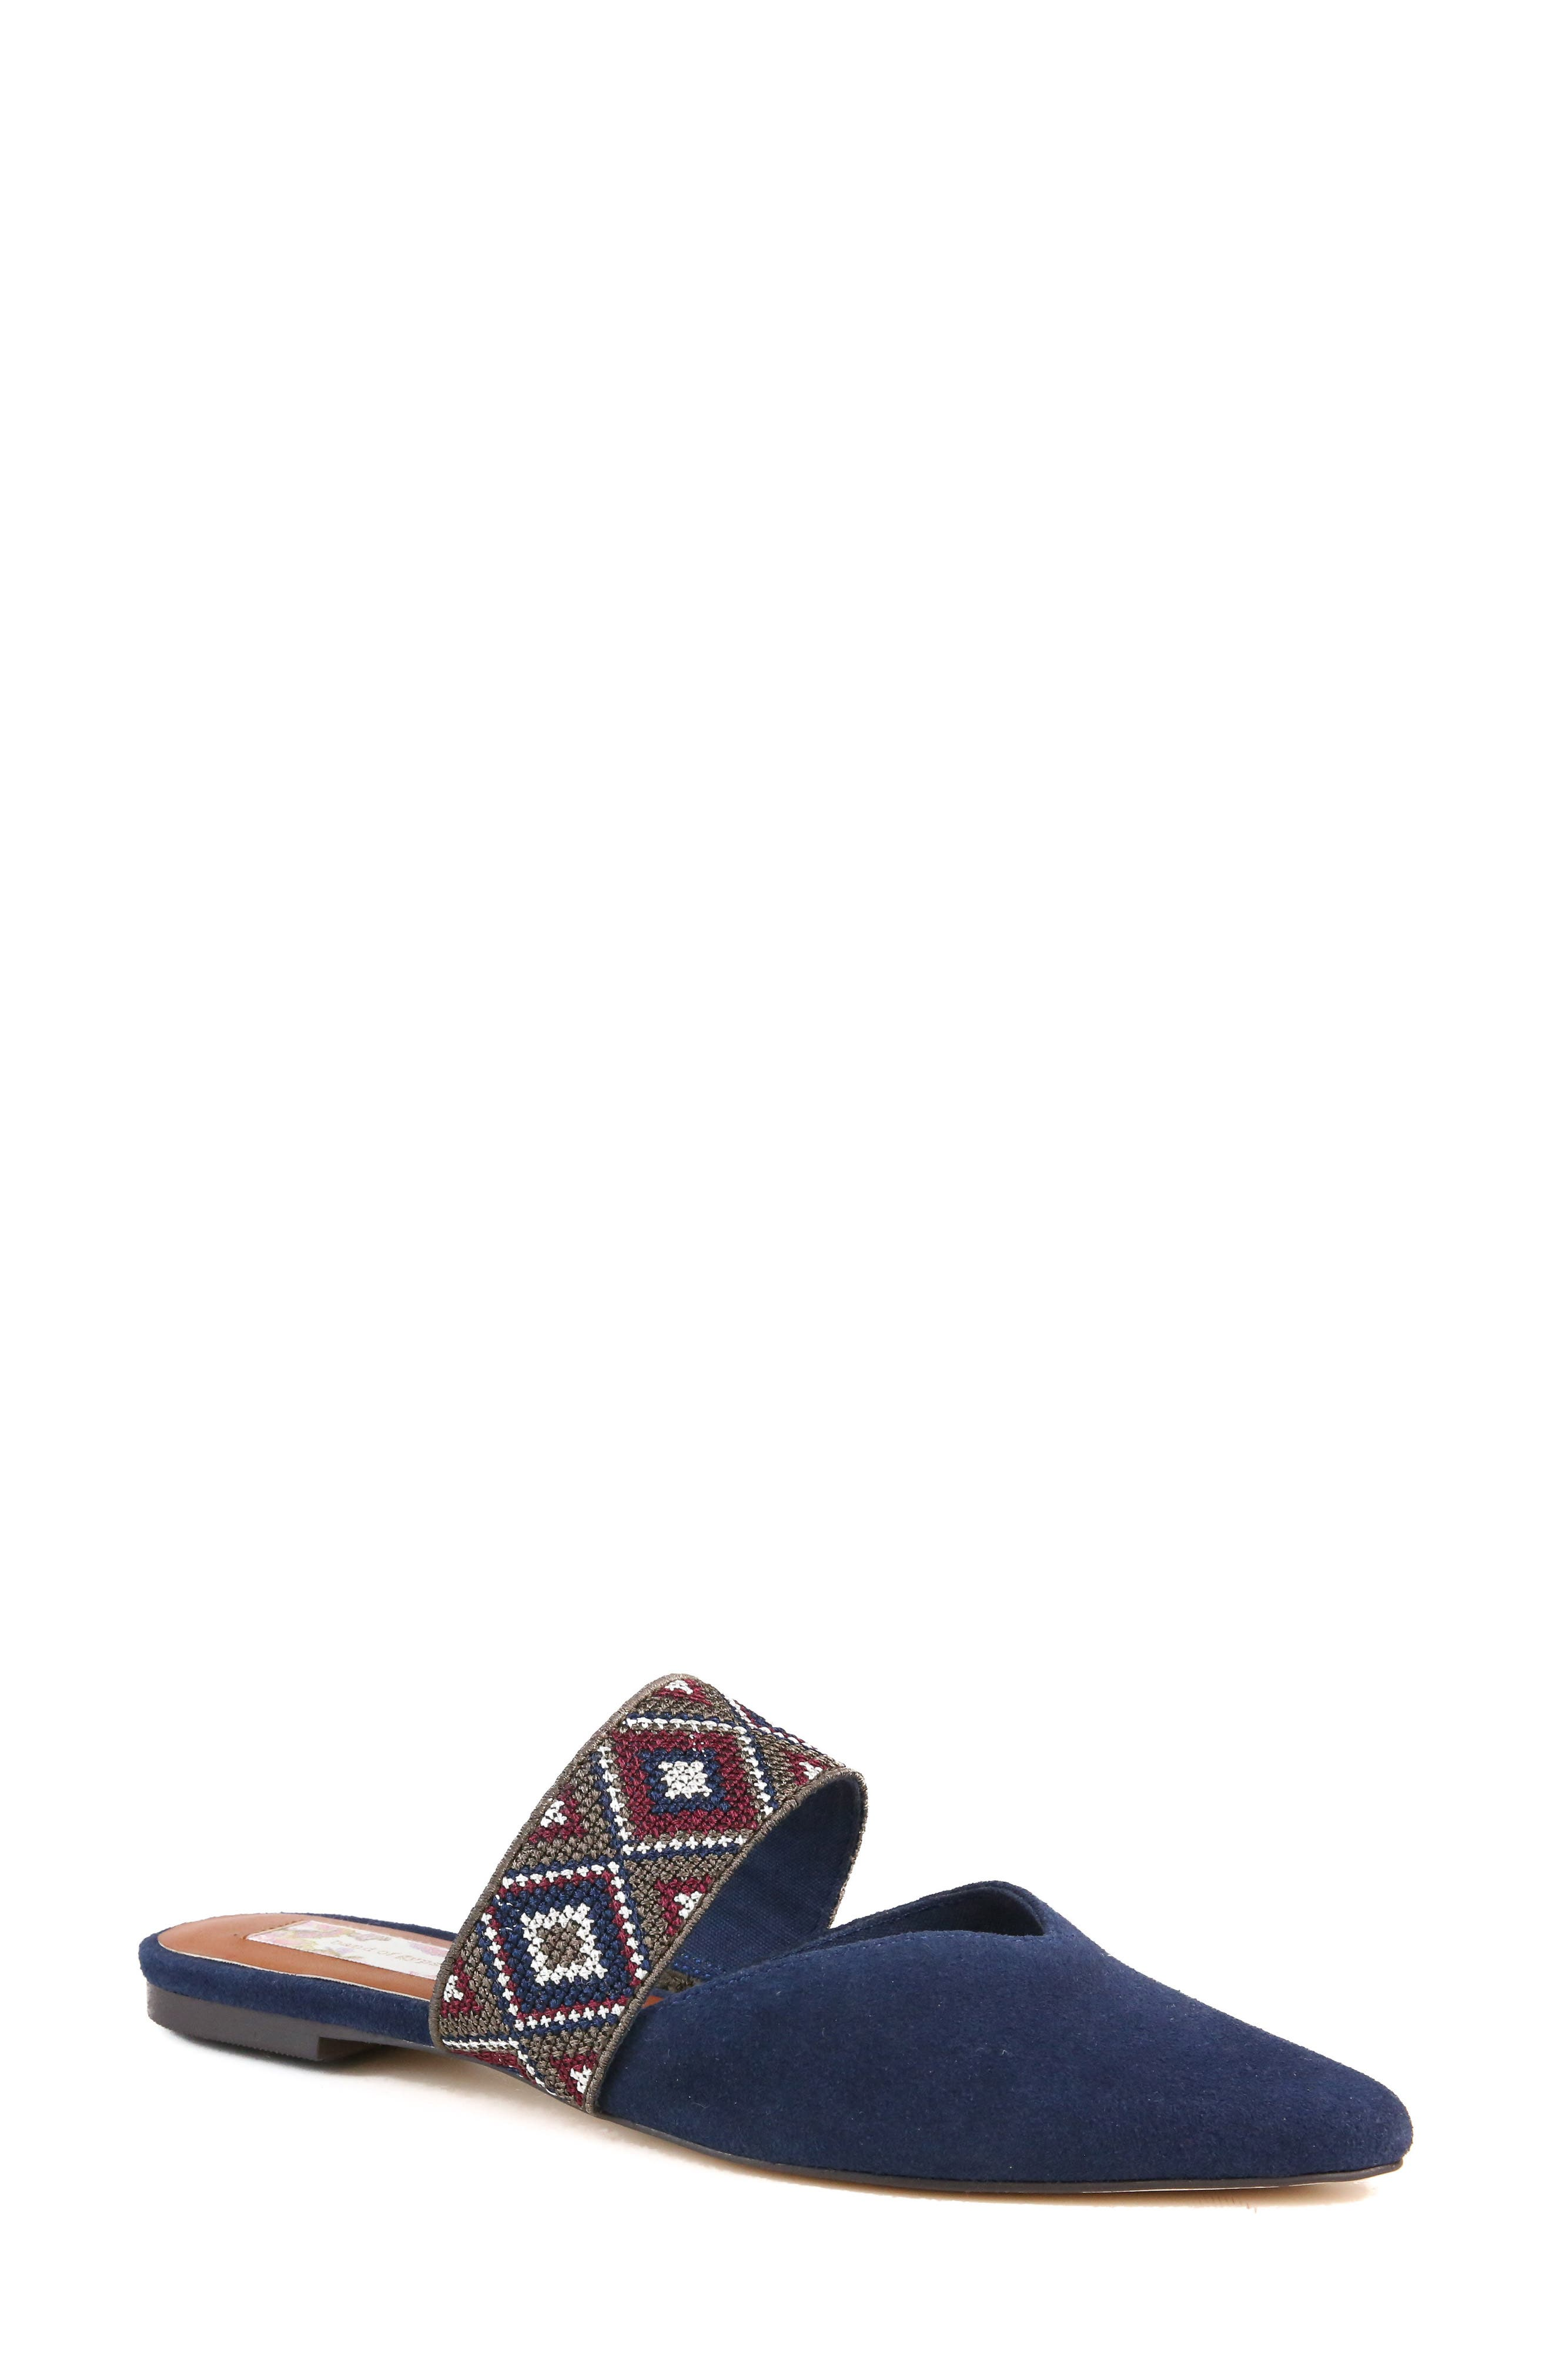 Enchanted Mule,                         Main,                         color, Navy